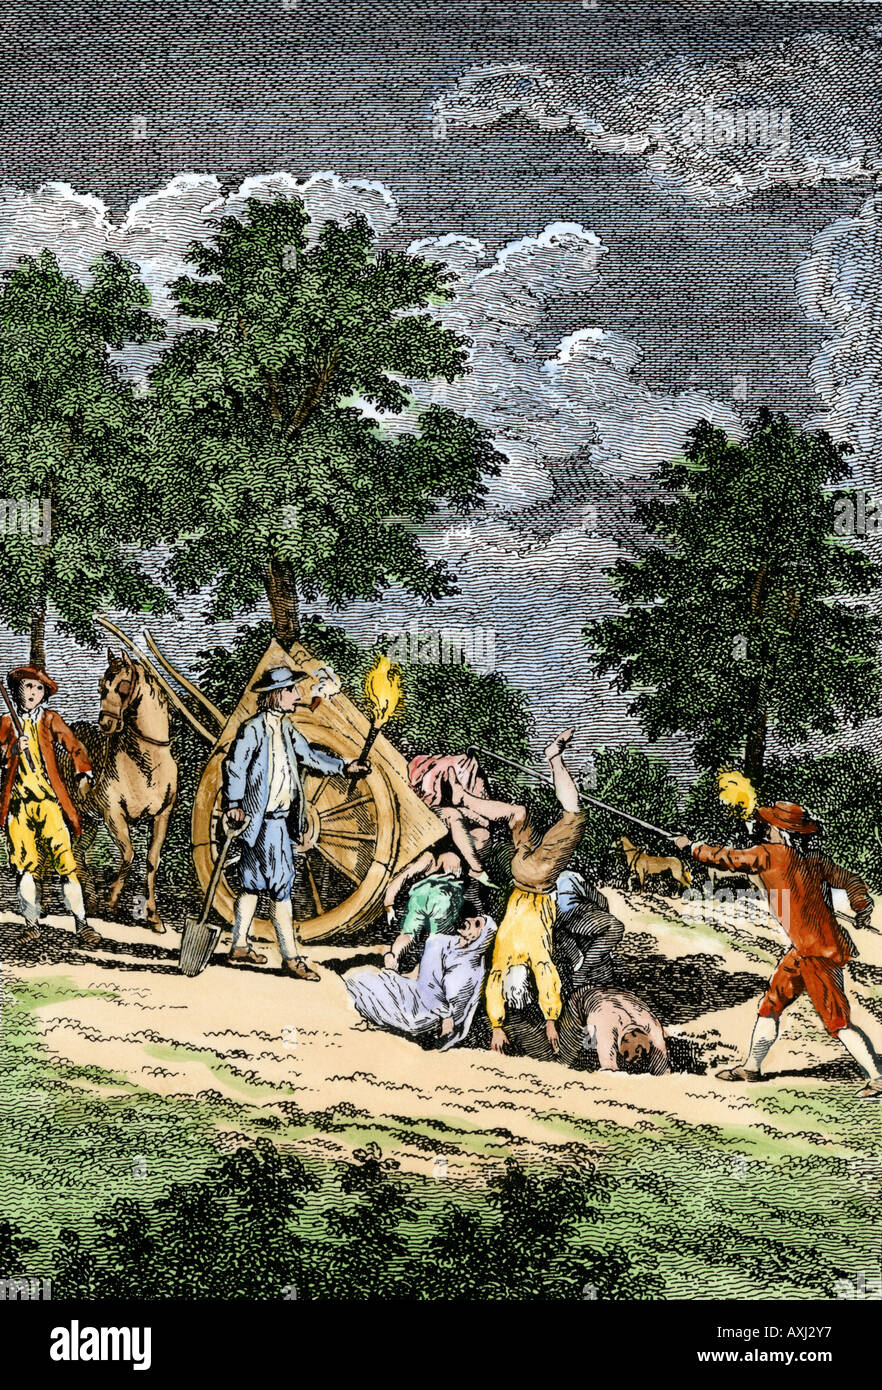 Burying dead bodies at Holywell Mount during the bubonic plague epidemic in England 1665. Hand-colored woodcut Stock Photo